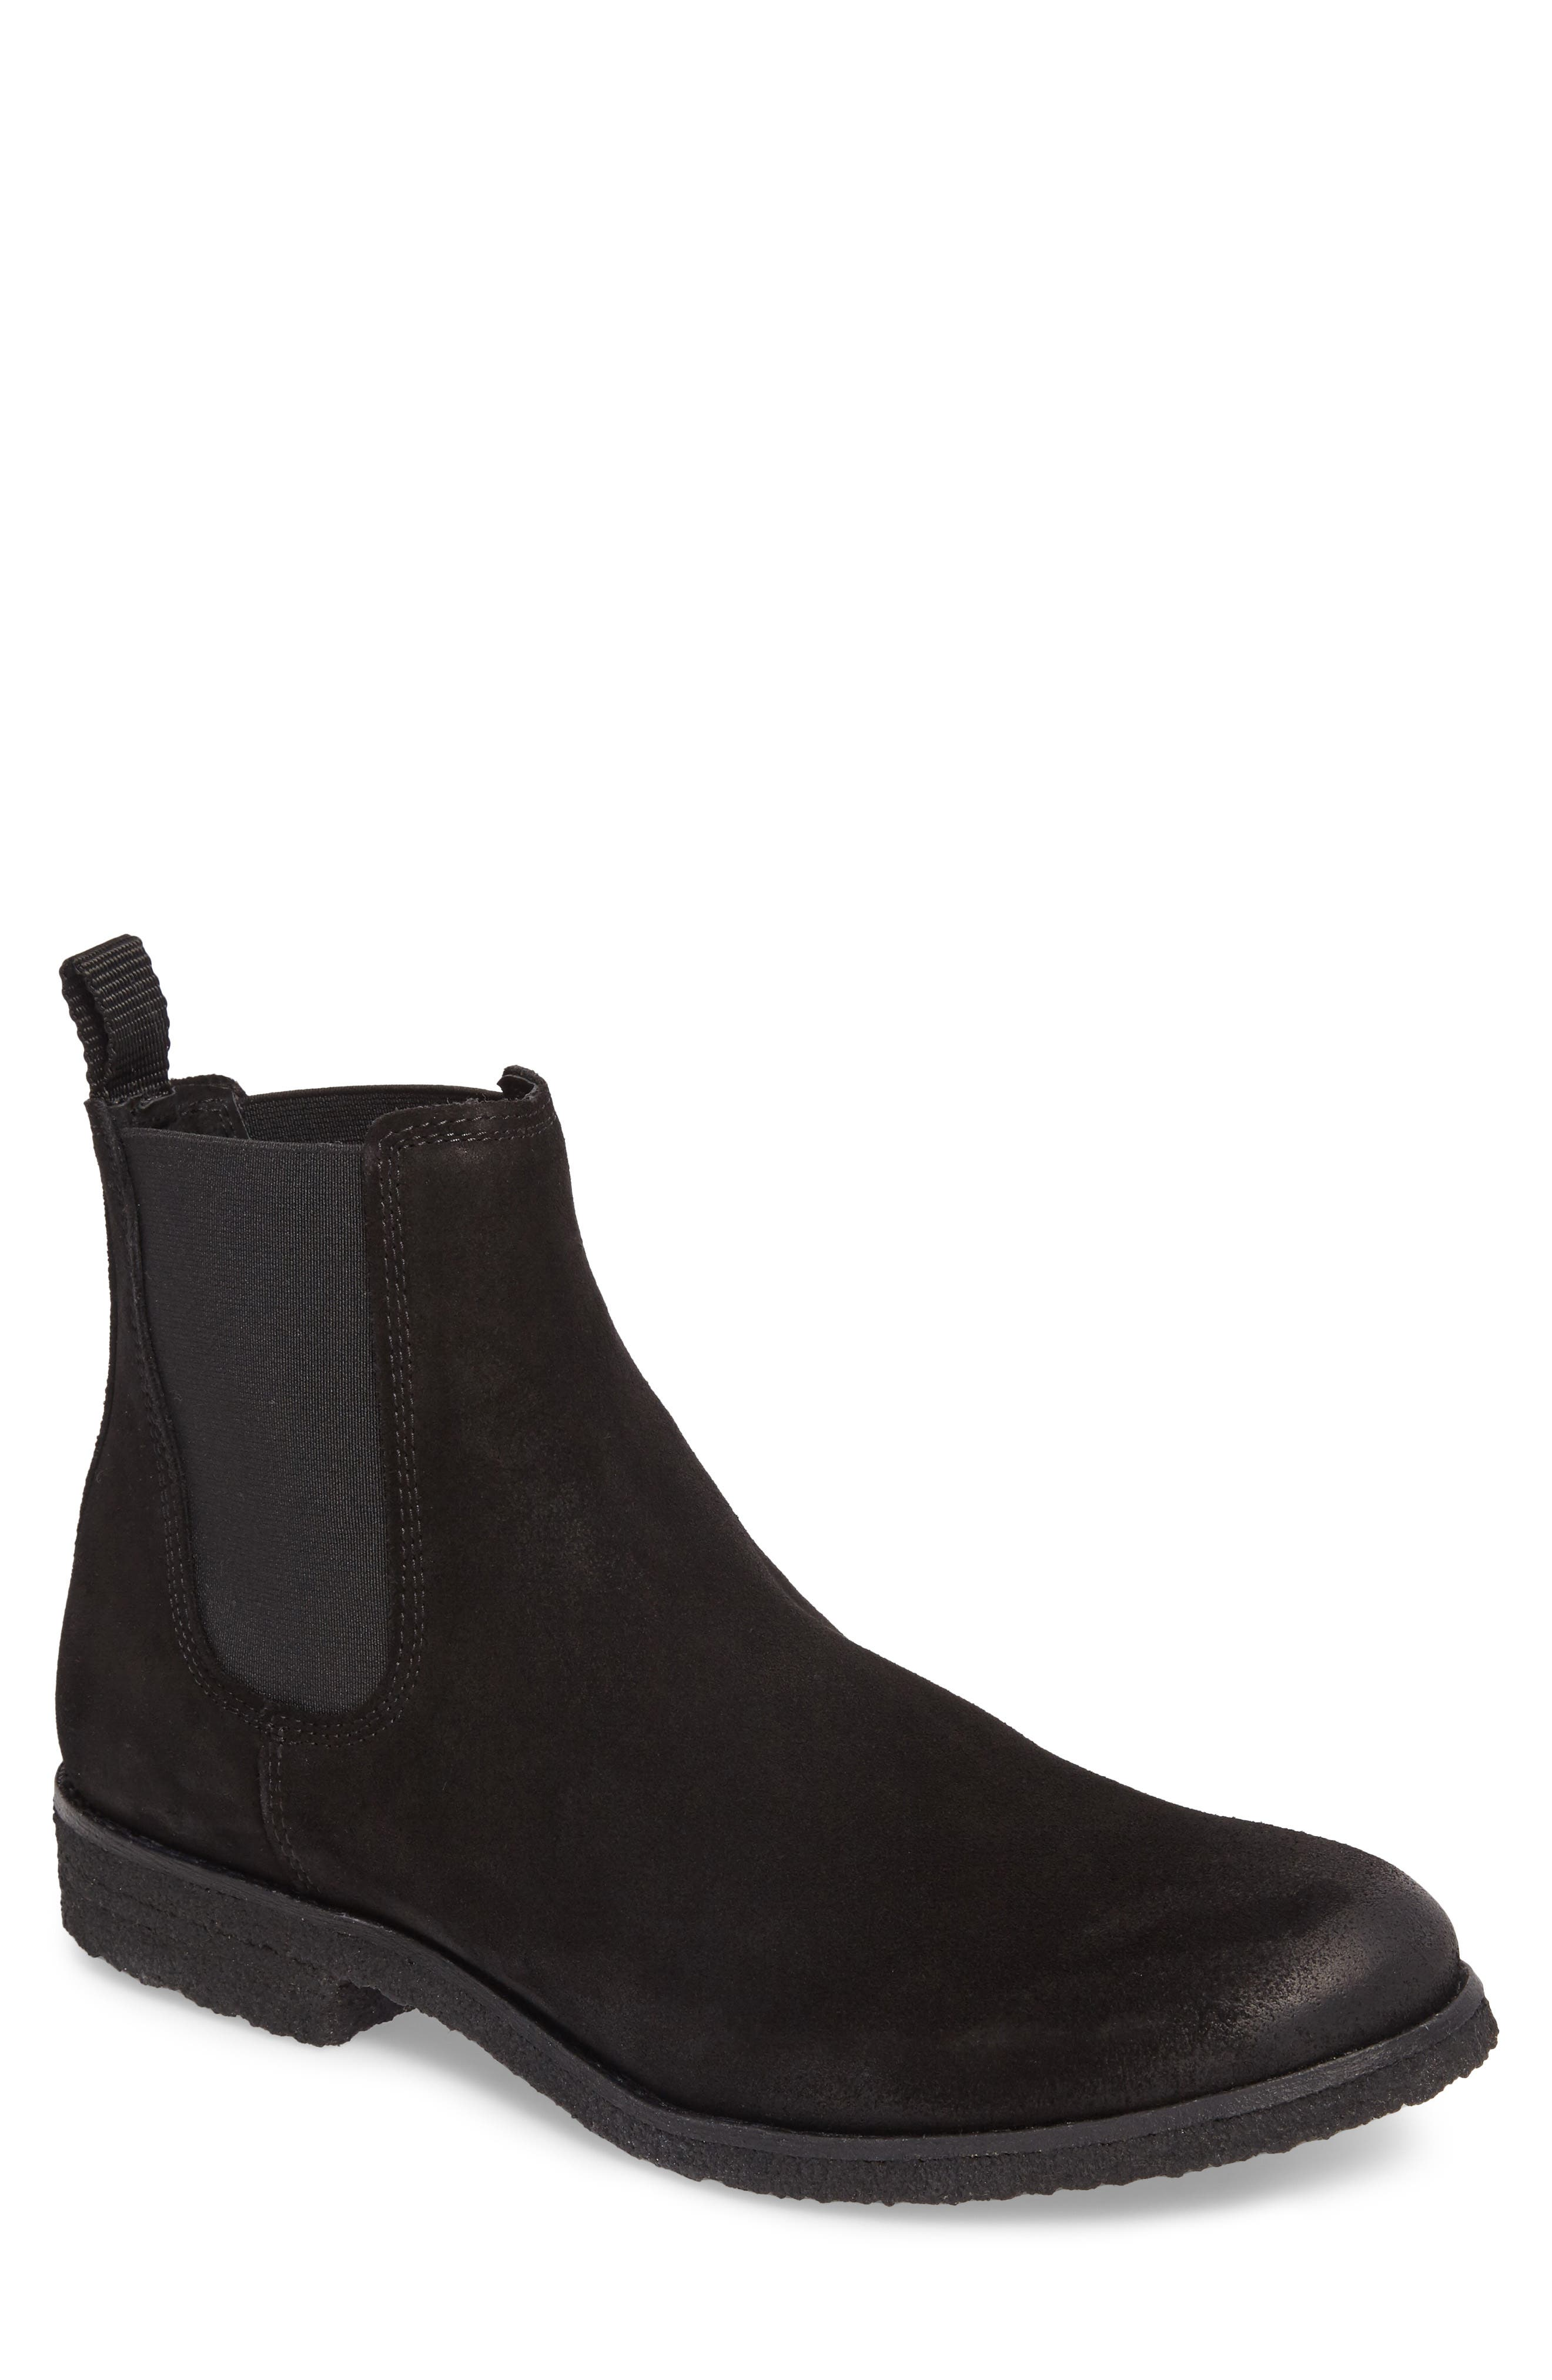 SUPPLY LAB Jared Chelsea Boot in Black Suede